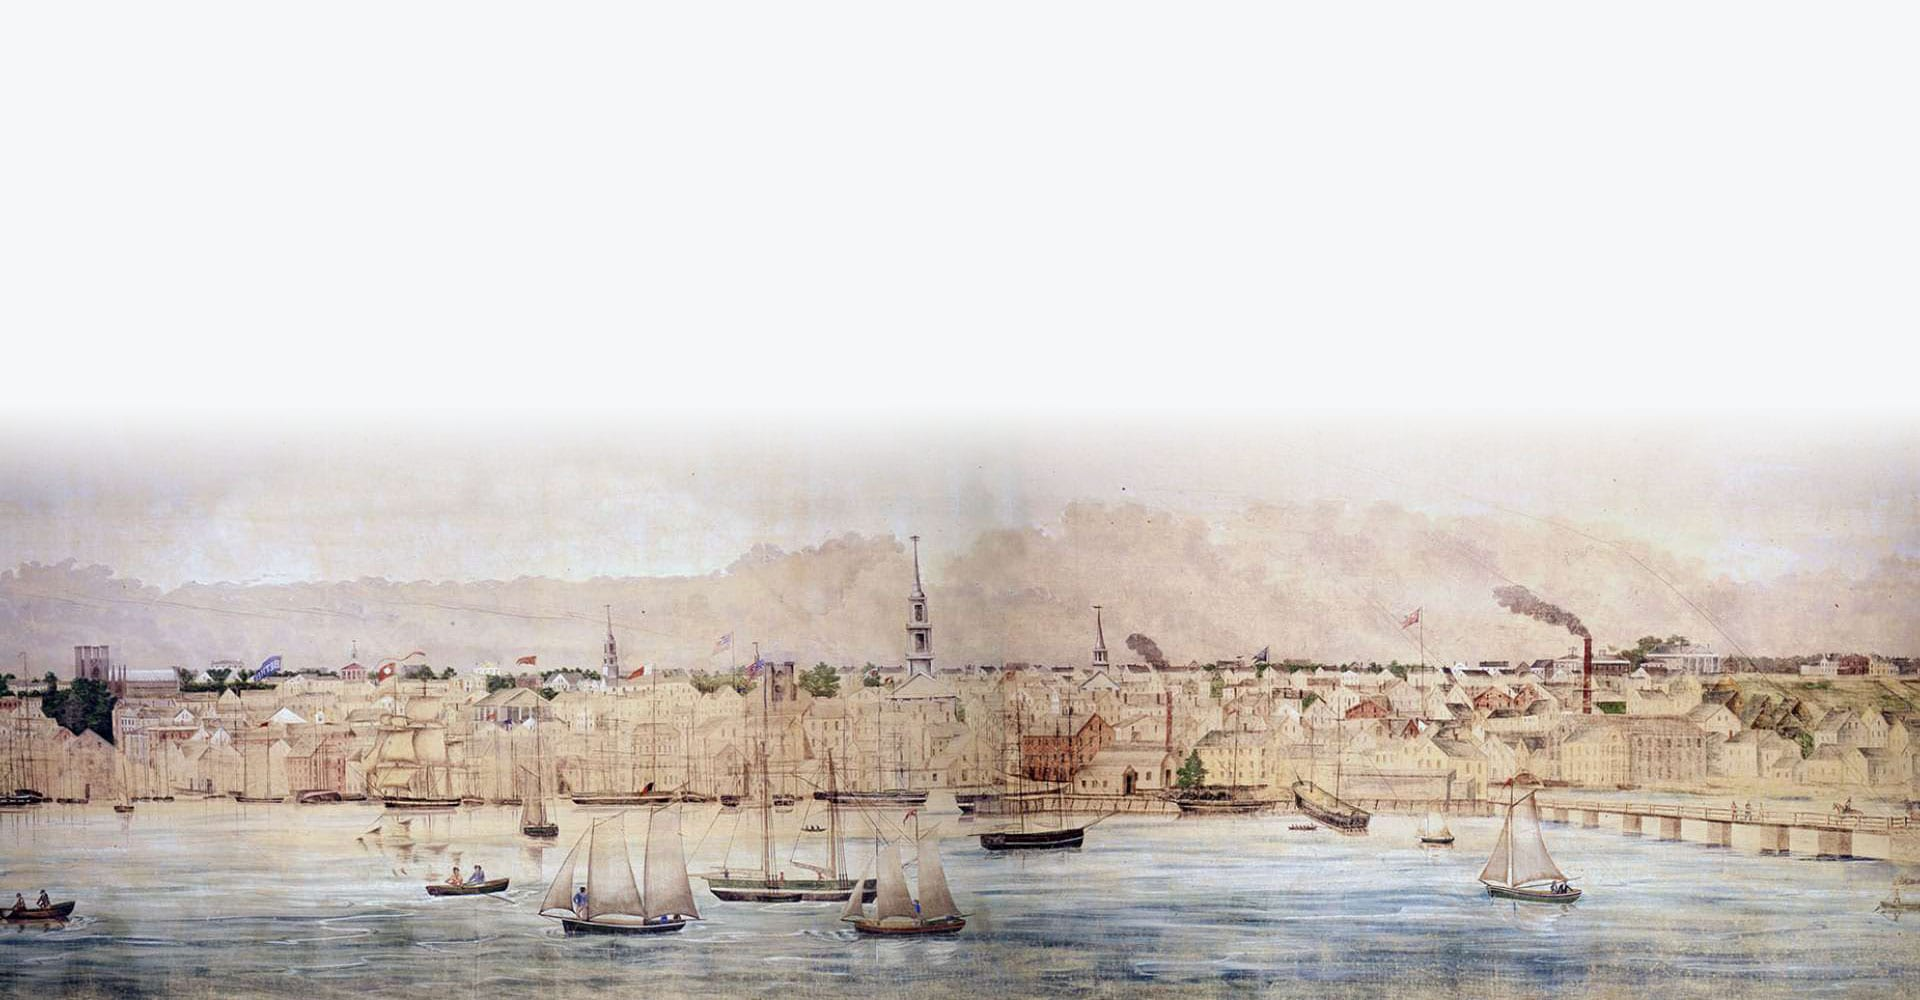 Section of Roll 1 of the Grand Panorma showing New Bedford, Massachusetts.